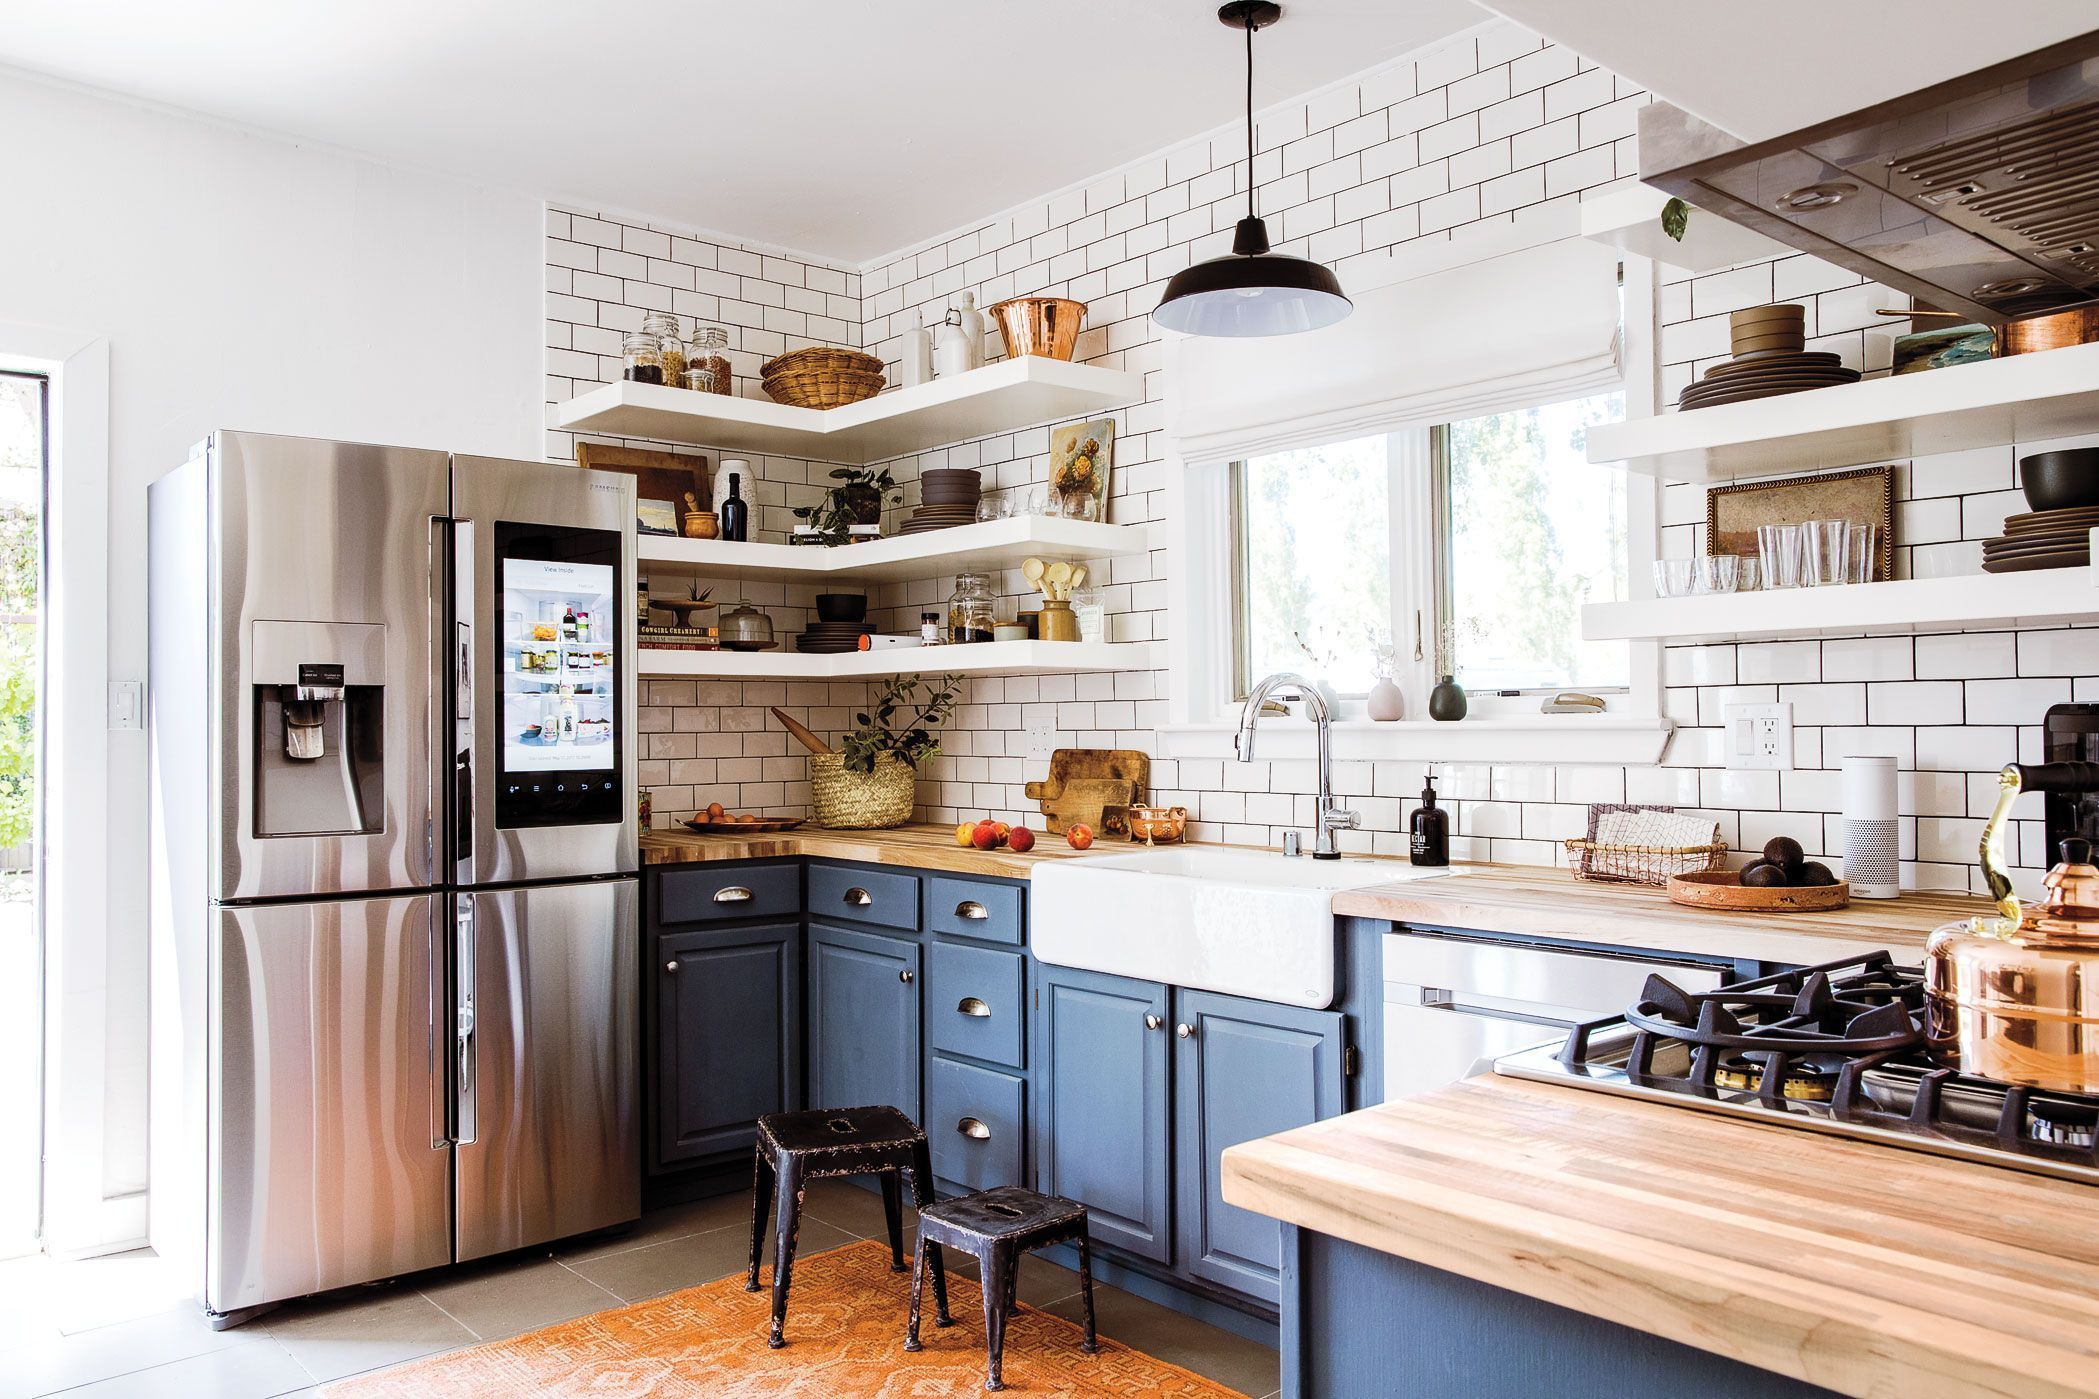 P Mccarthy Opened Up The Kitchen By Swapping Out The Upper Cabinets For White Shelves Against Counter T Kitchen Remodel Small Kitchen Design Kitchen Remodel